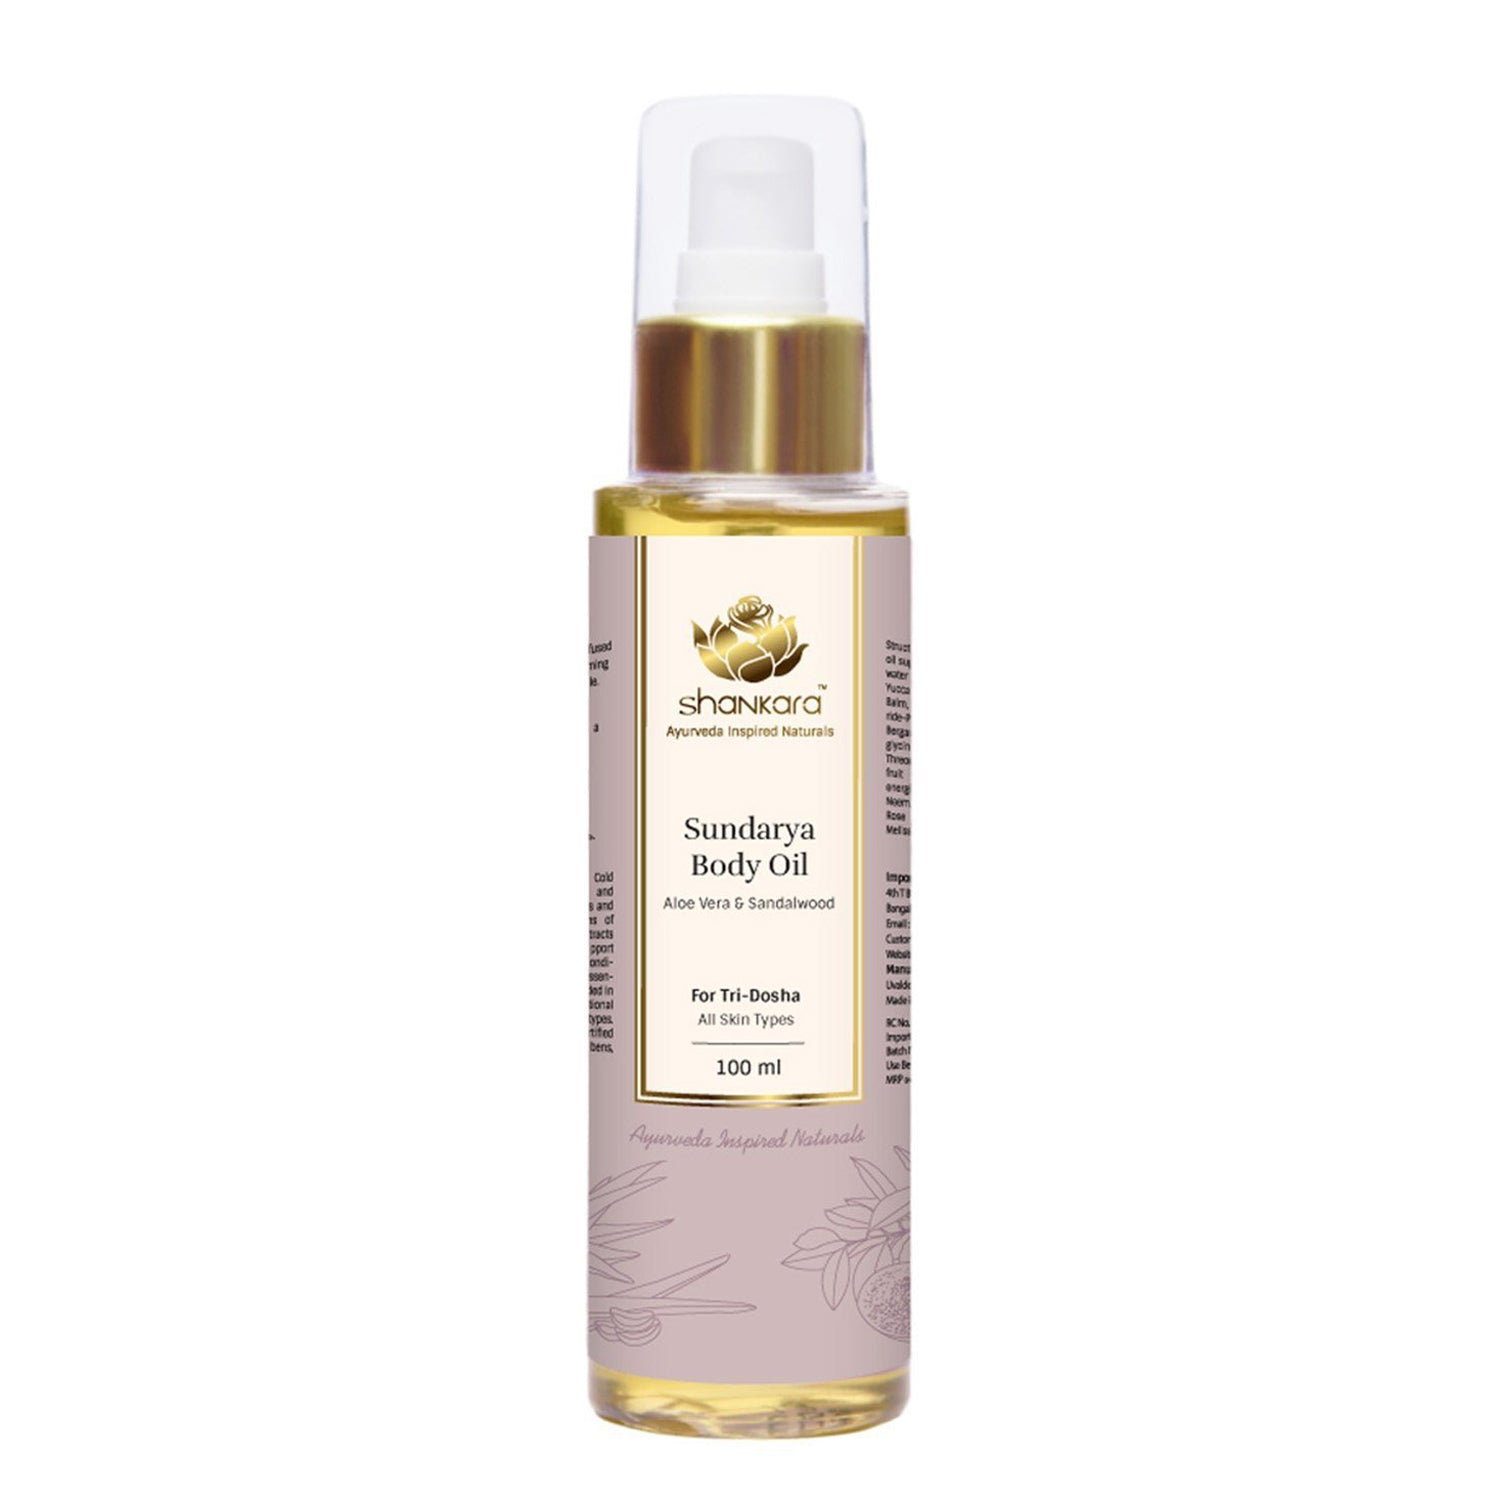 Shankara Sundarya Body Oil 100ml